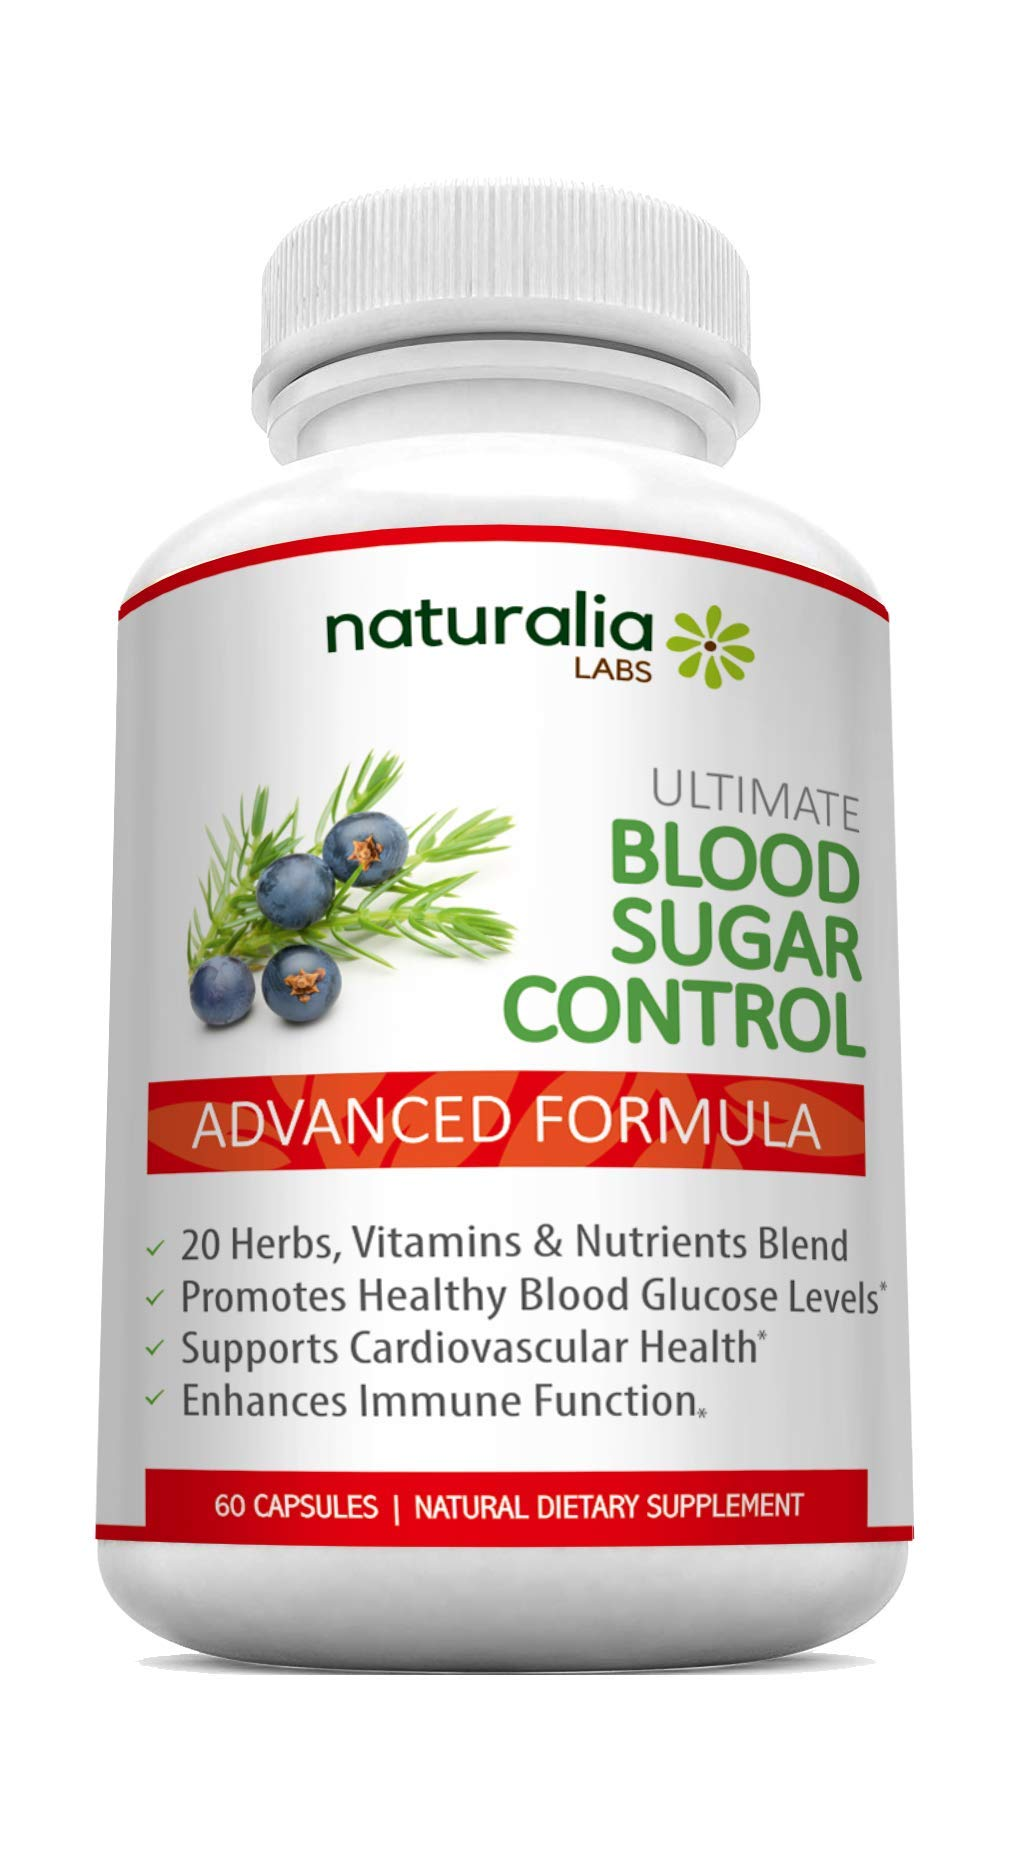 Naturalia Labs - Blood Sugar Support Supplements - Promotes Healthy Blood Glucose Levels - Supports Cardiovascular Health - with Vitamin C, Magnesium, Alpha Lipoic Acid, Zinc, Cinnamon, Licorice Root by Naturalia Labs